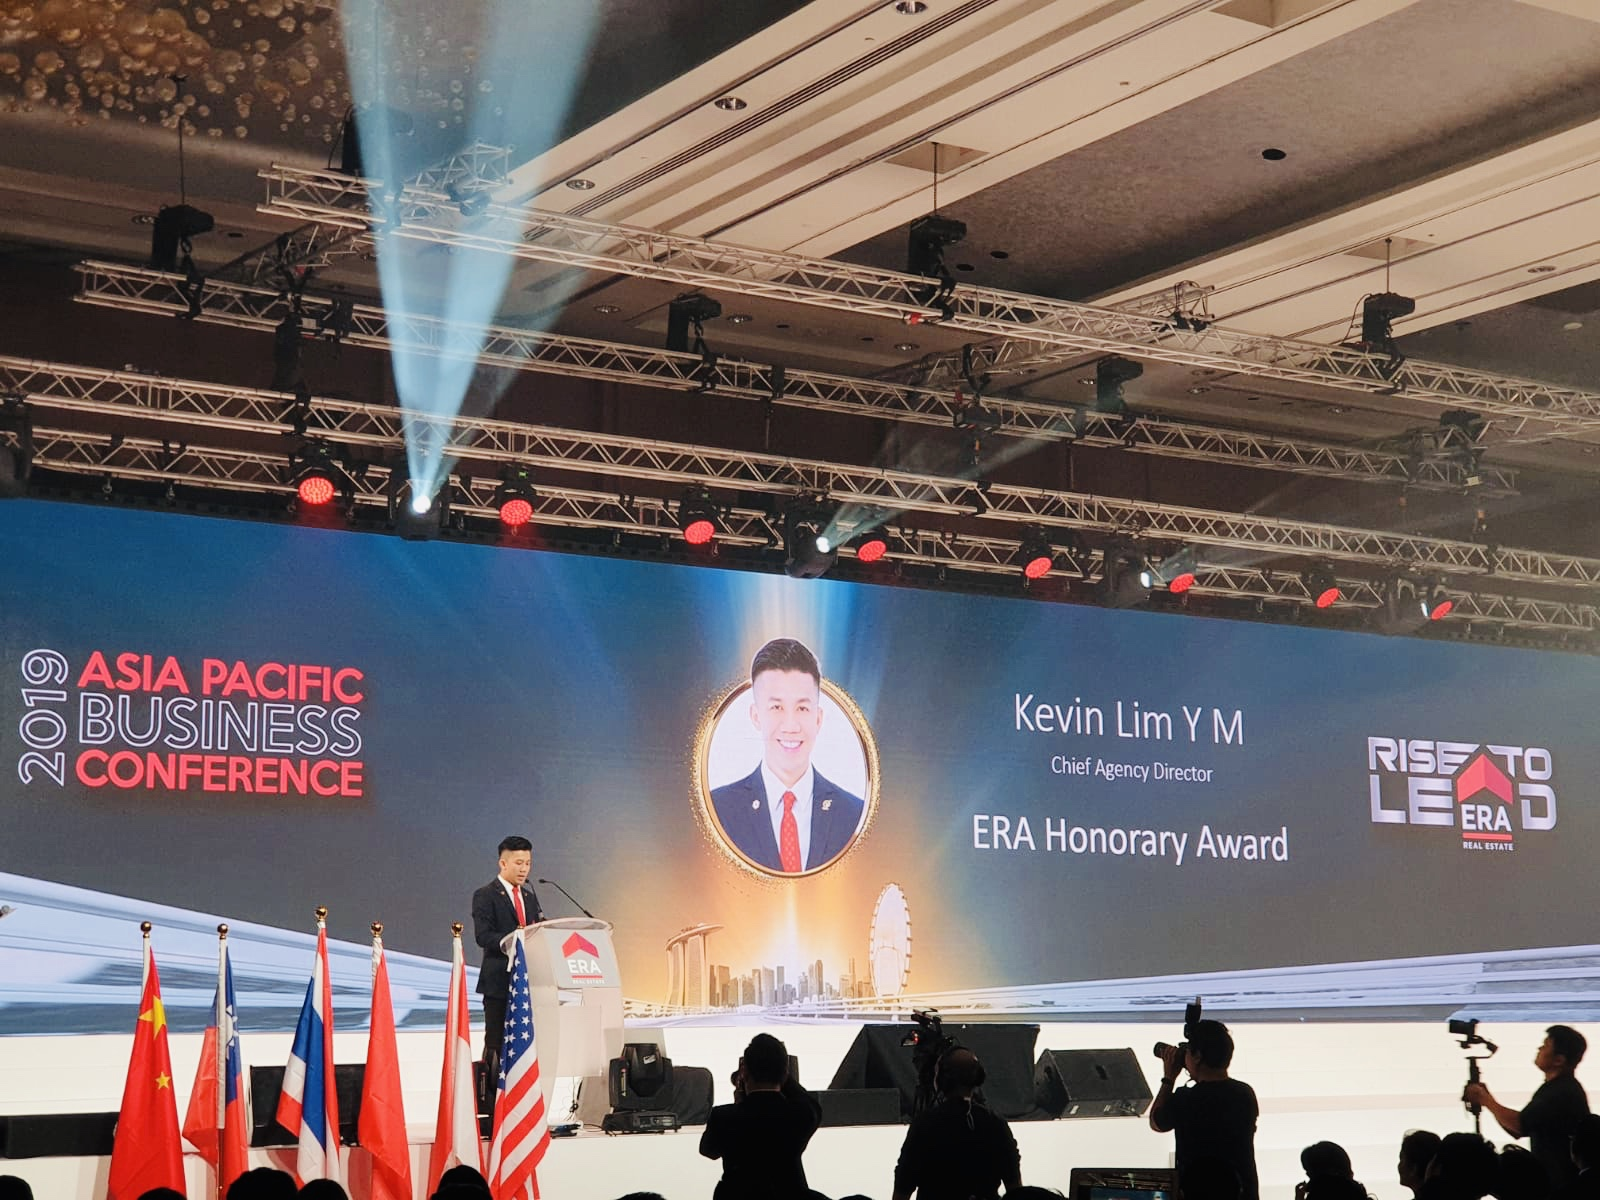 Kevin Lim awarded ERA Honorary Award at 2019 ERA Asia Pacific Business Conference